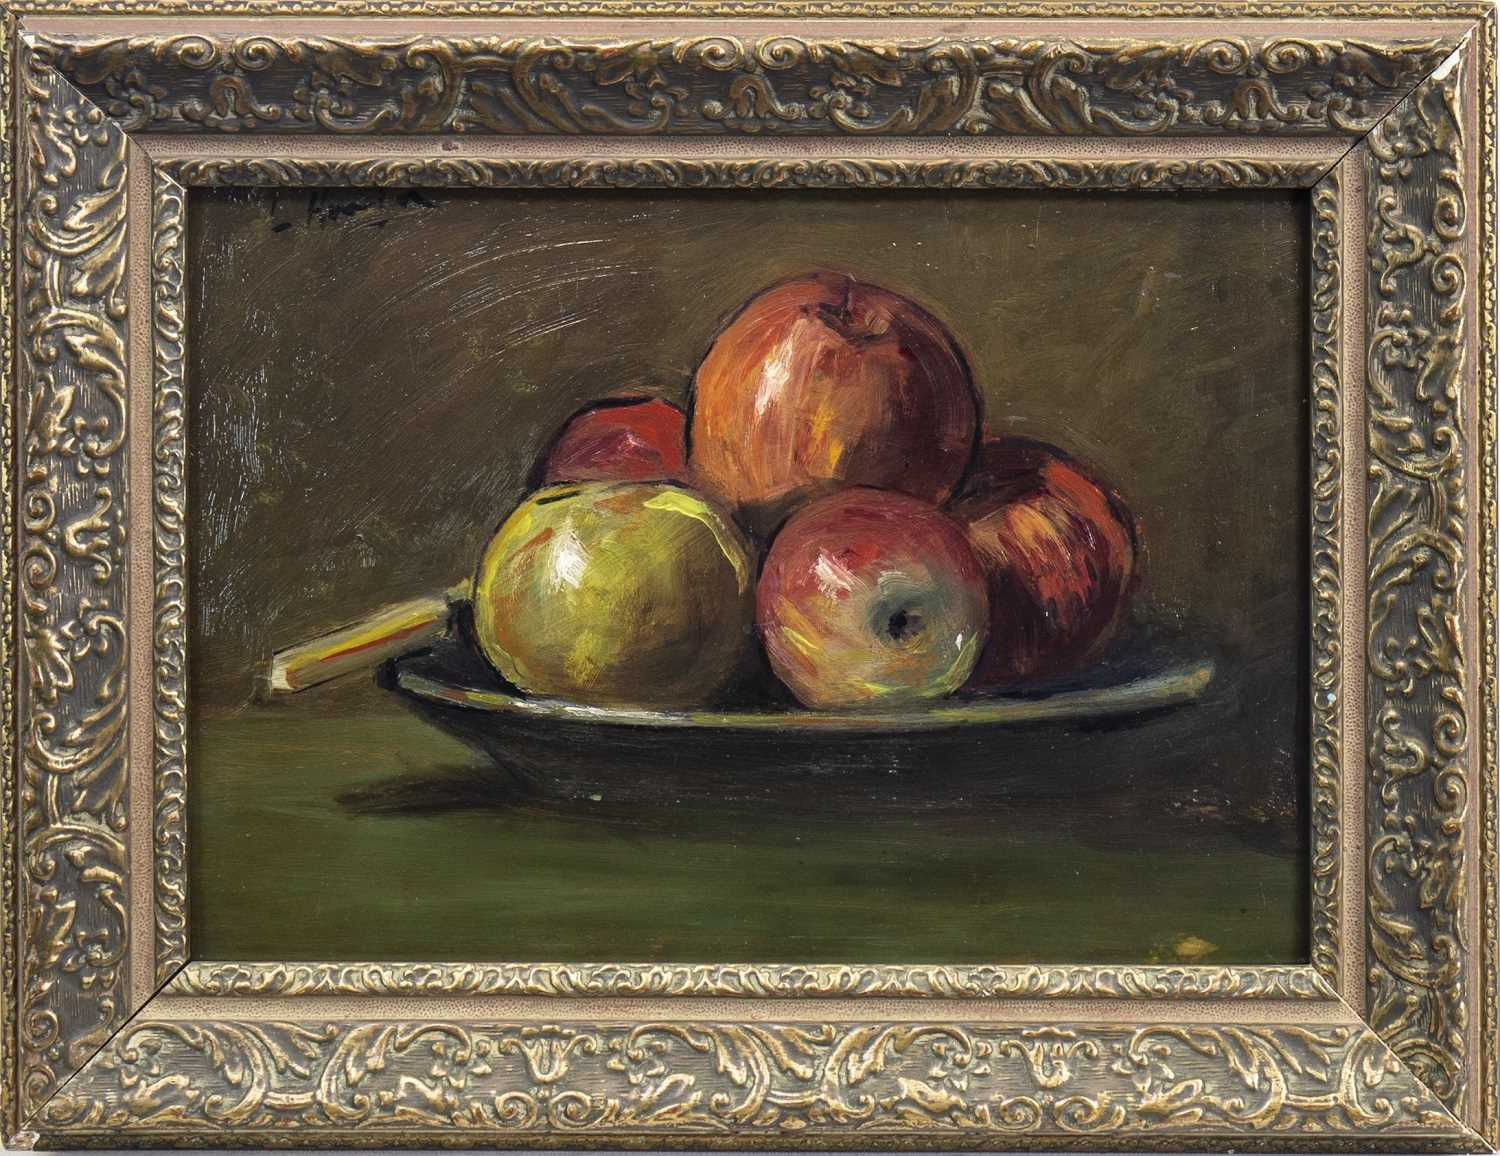 Lot 440 - STILL LIFE WITH APPLES, AN OIL BY GEORGE LESLIE HUNTER